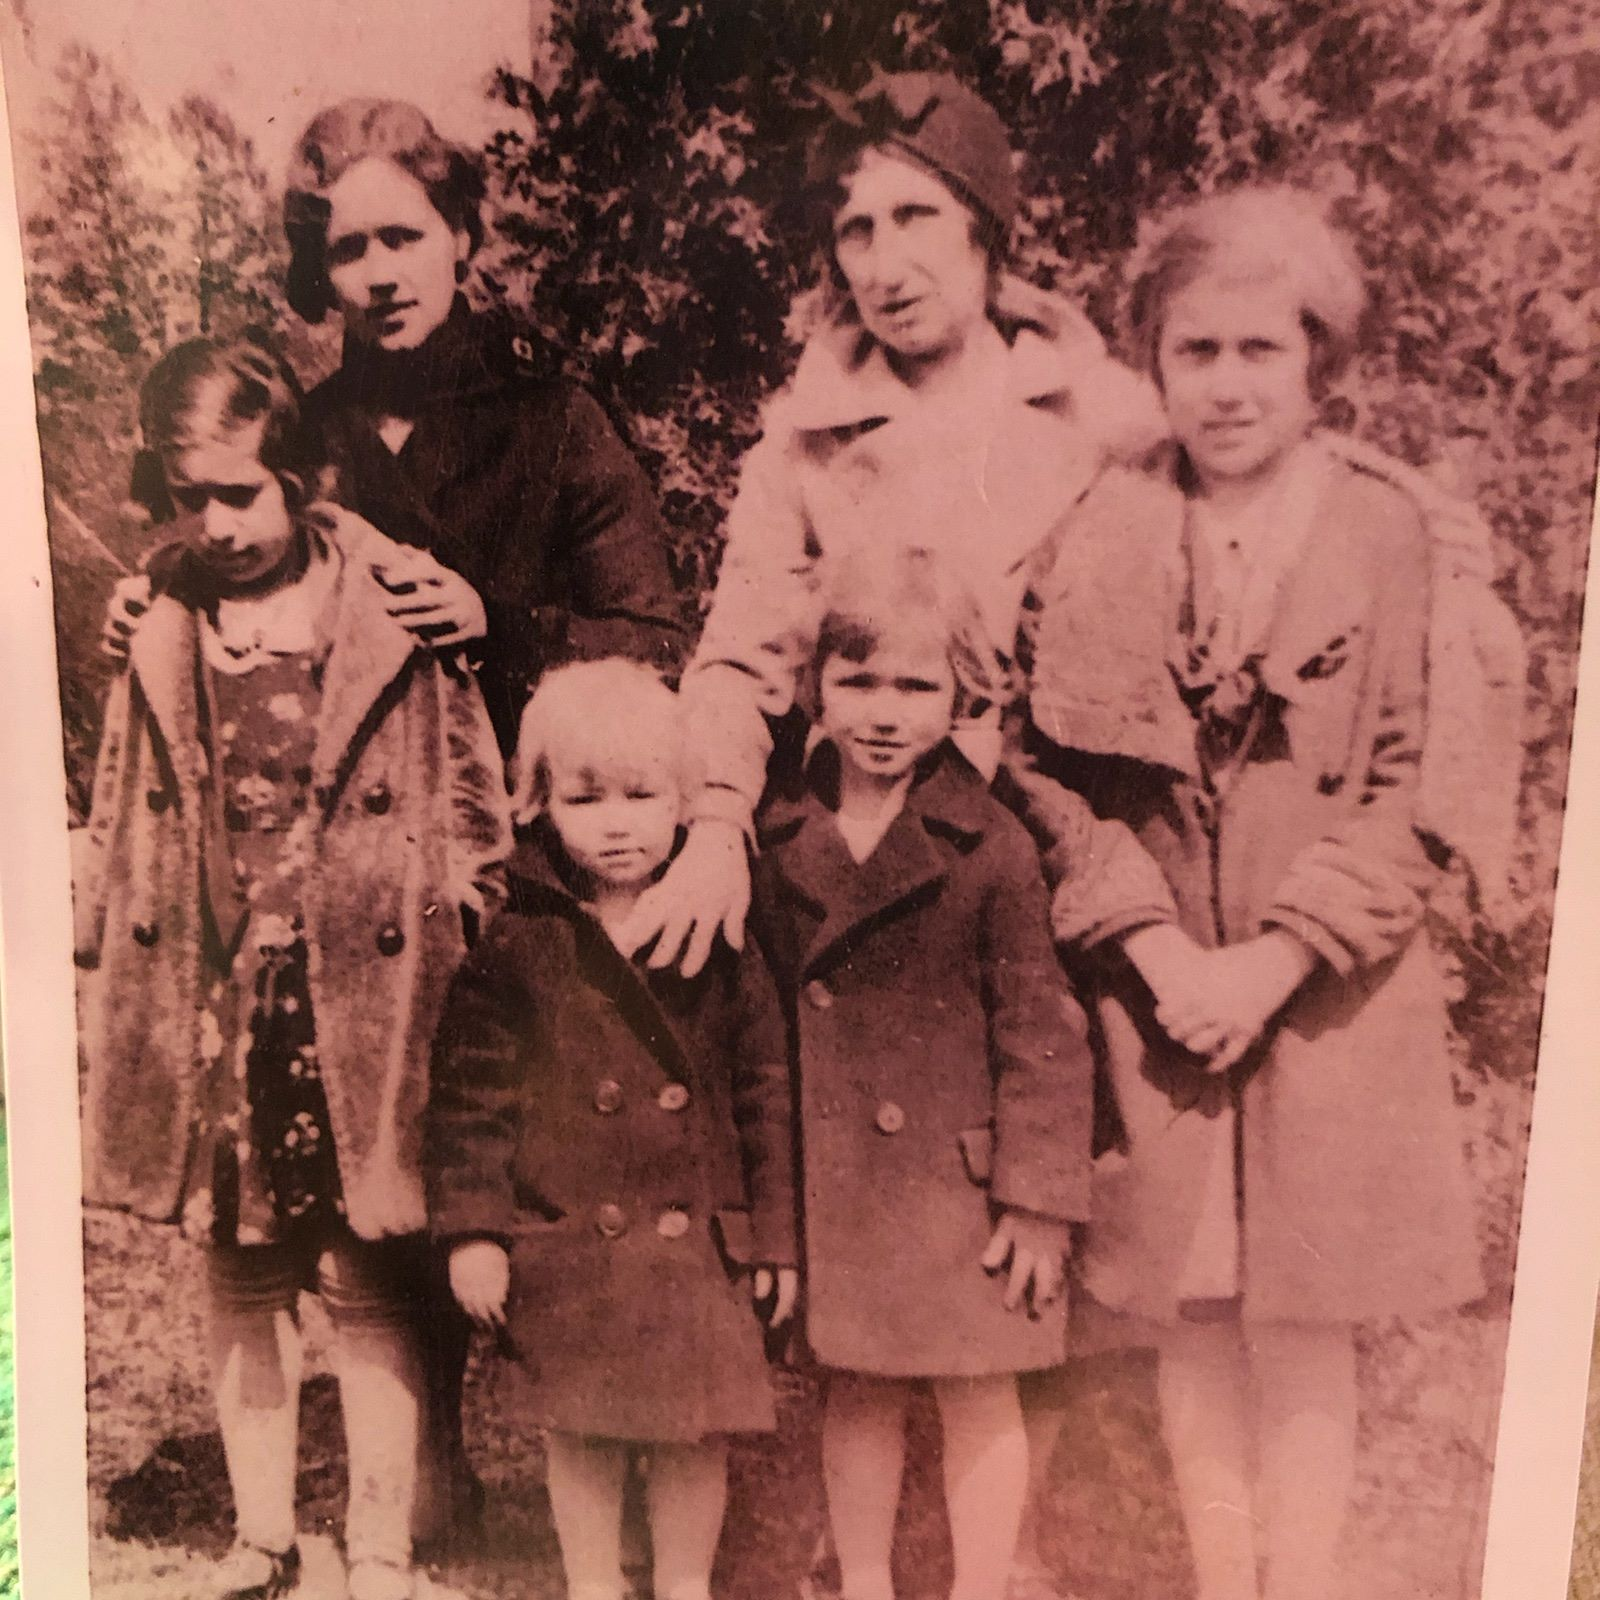 Here is a photograph of four generations! My great grandmother Patsy Patrick, her mother, my great great grandmother Nona (we are not sure who the other two girls are in the middle) and my great grandmothers Patsy's children, Mildred (my maternal grandmother) on the left and her sister Geraldine on the right.